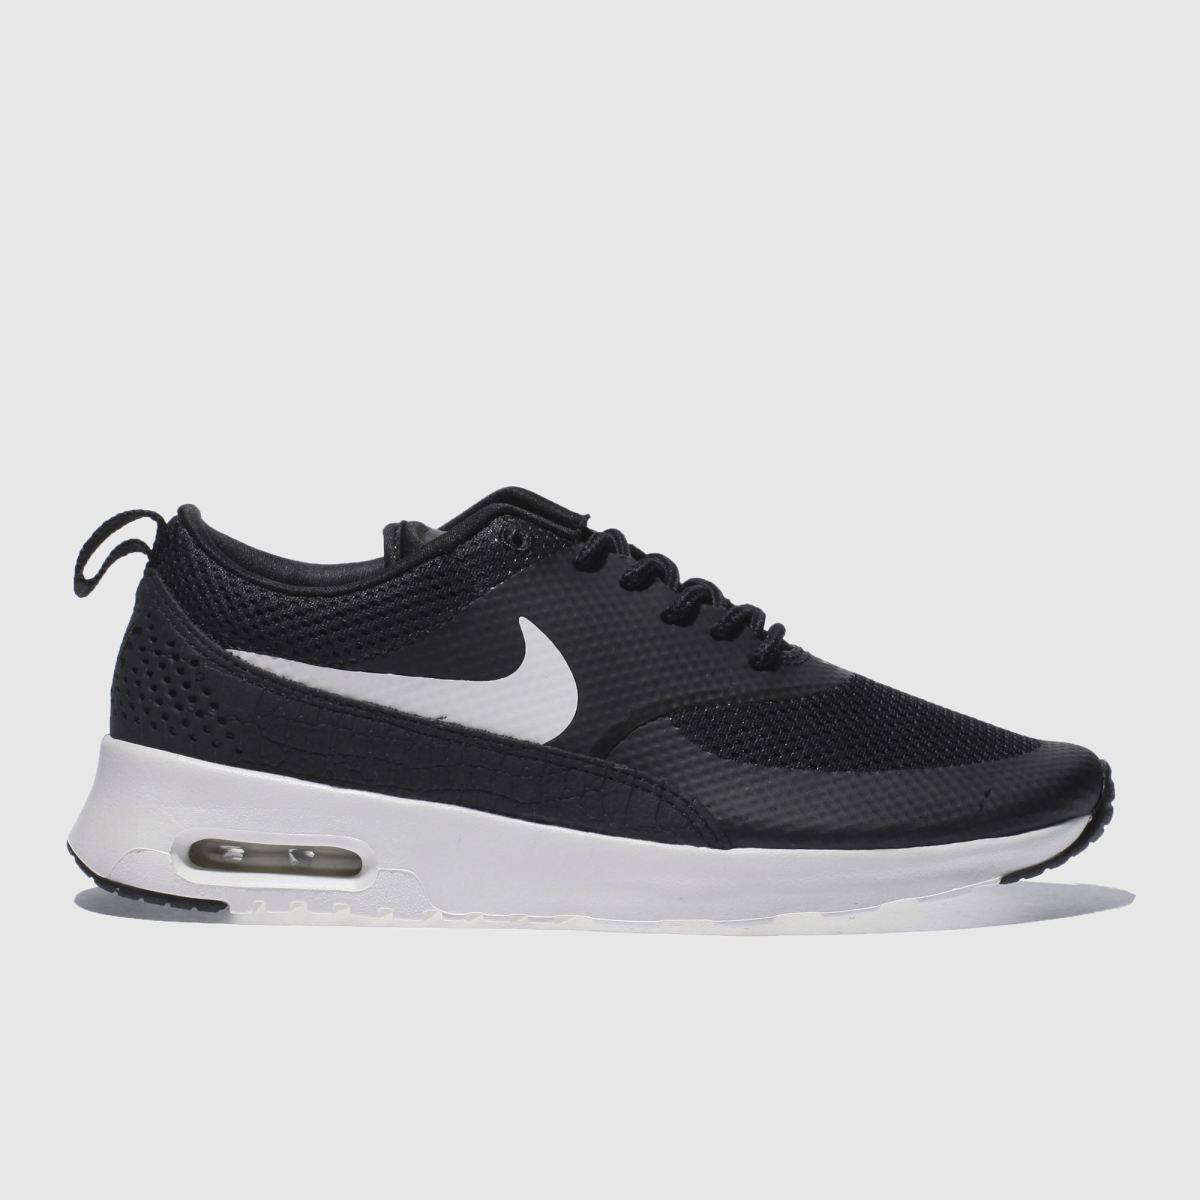 Nike Air Max Thea Mens